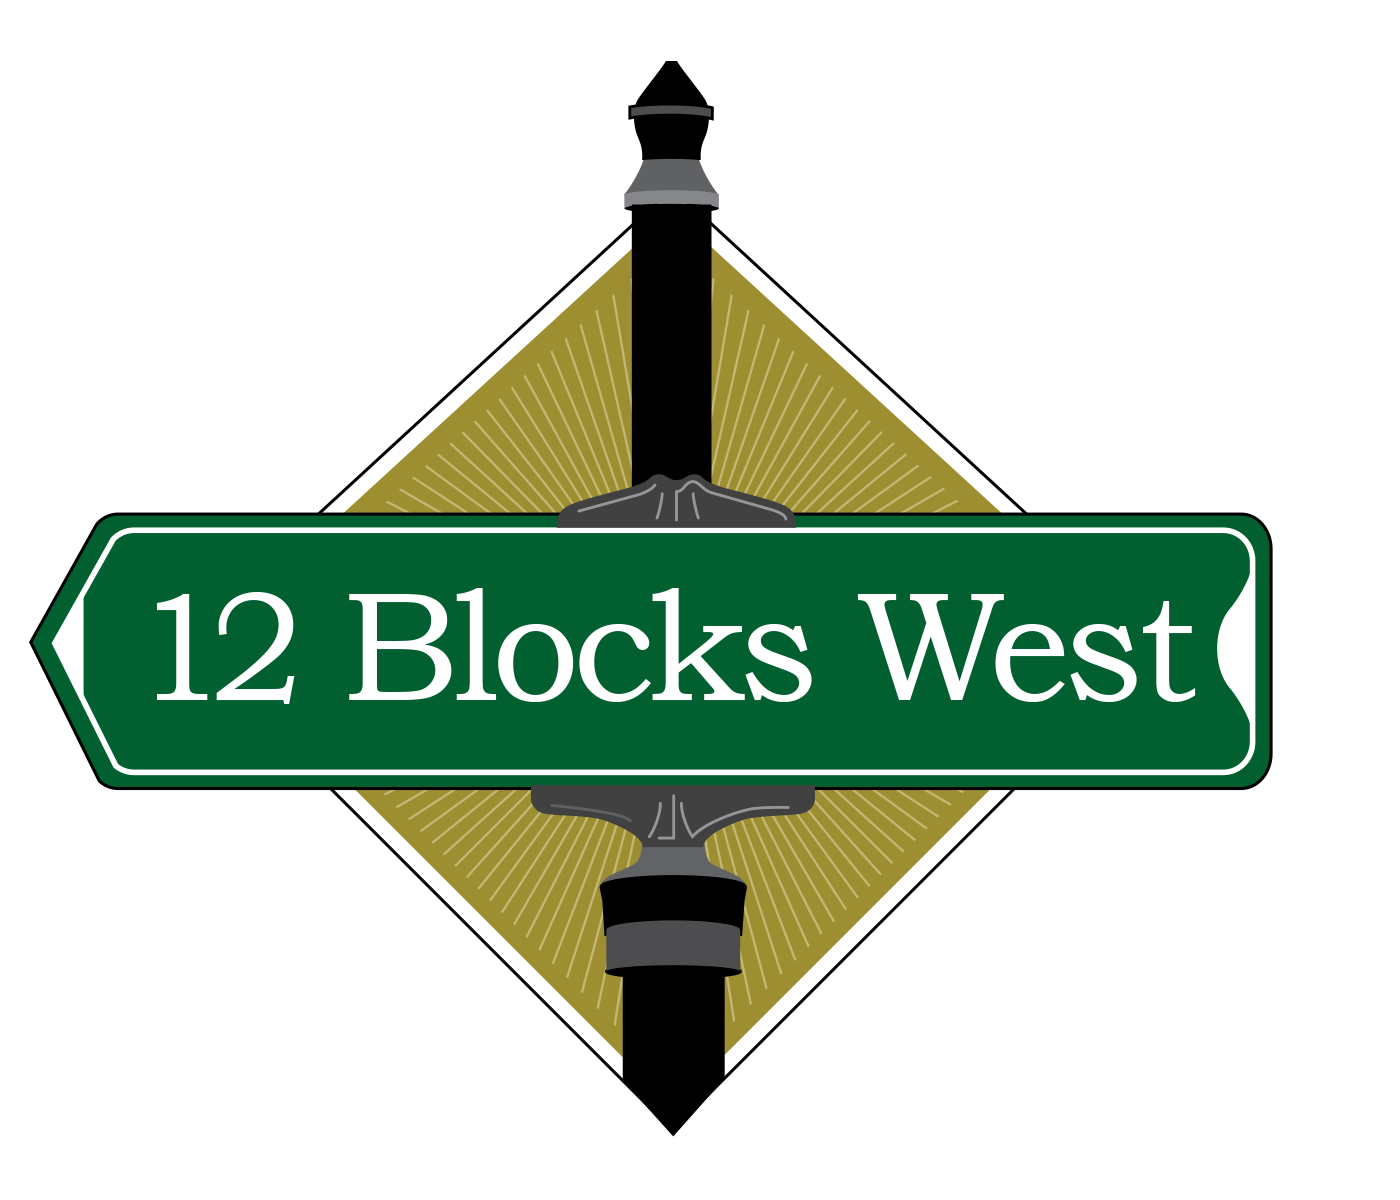 12 Blocks West